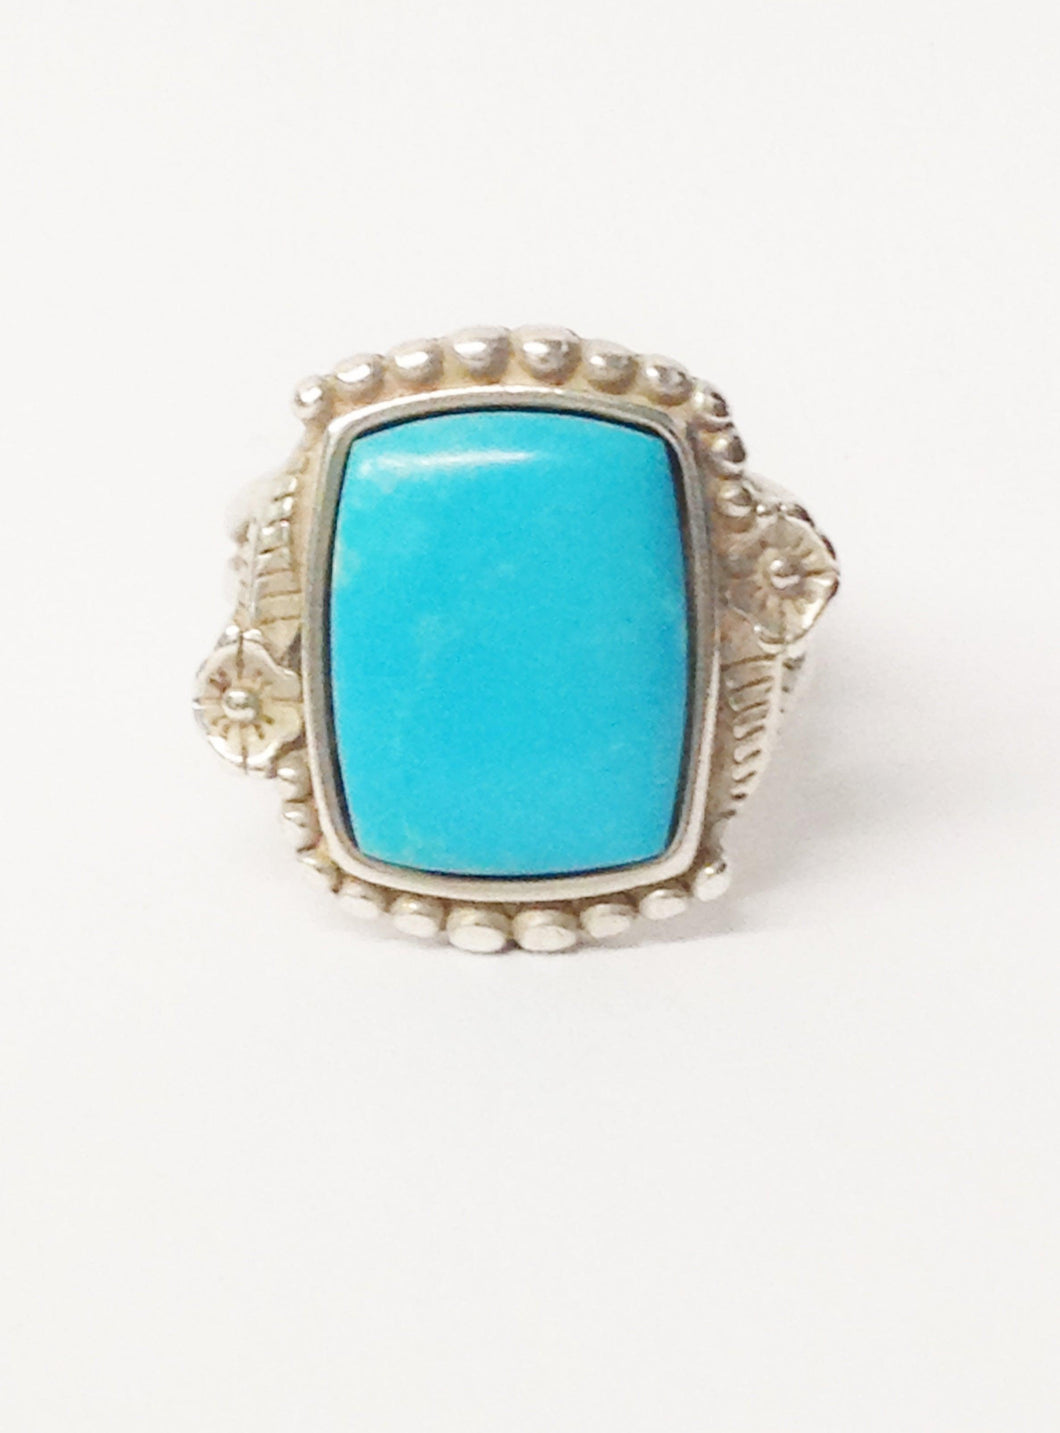 Native American Signed Square Cut Turquoise Gemstone .925 Sterling Silver Ring www.hersandhistreasures.com/collections/sterling-silver-jewelry